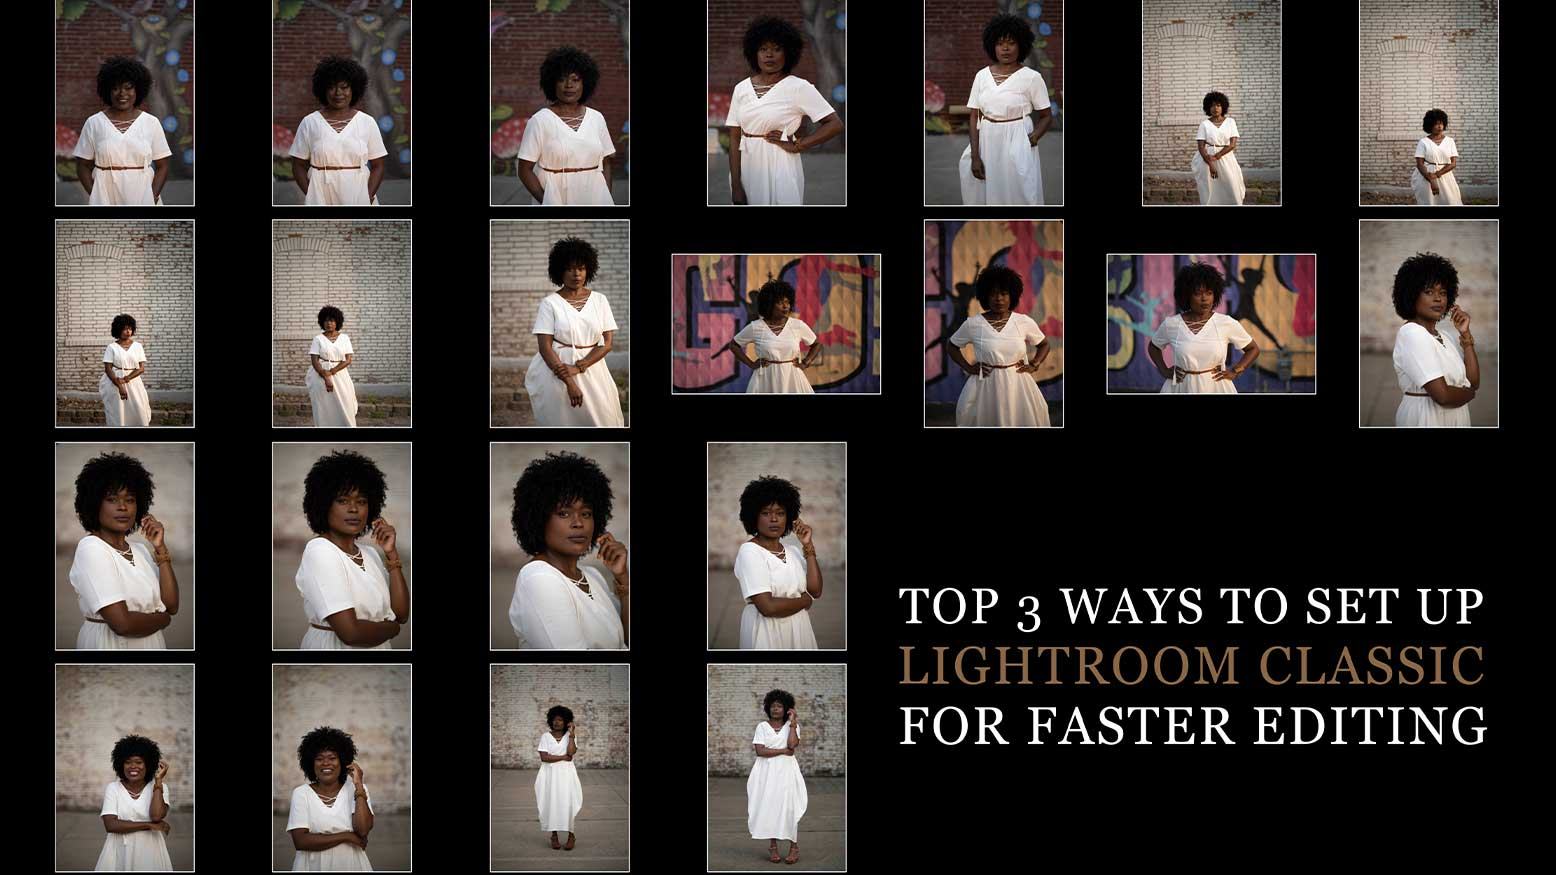 Top 3 Ways To Set Up Lightroom Classic for Faster Editing